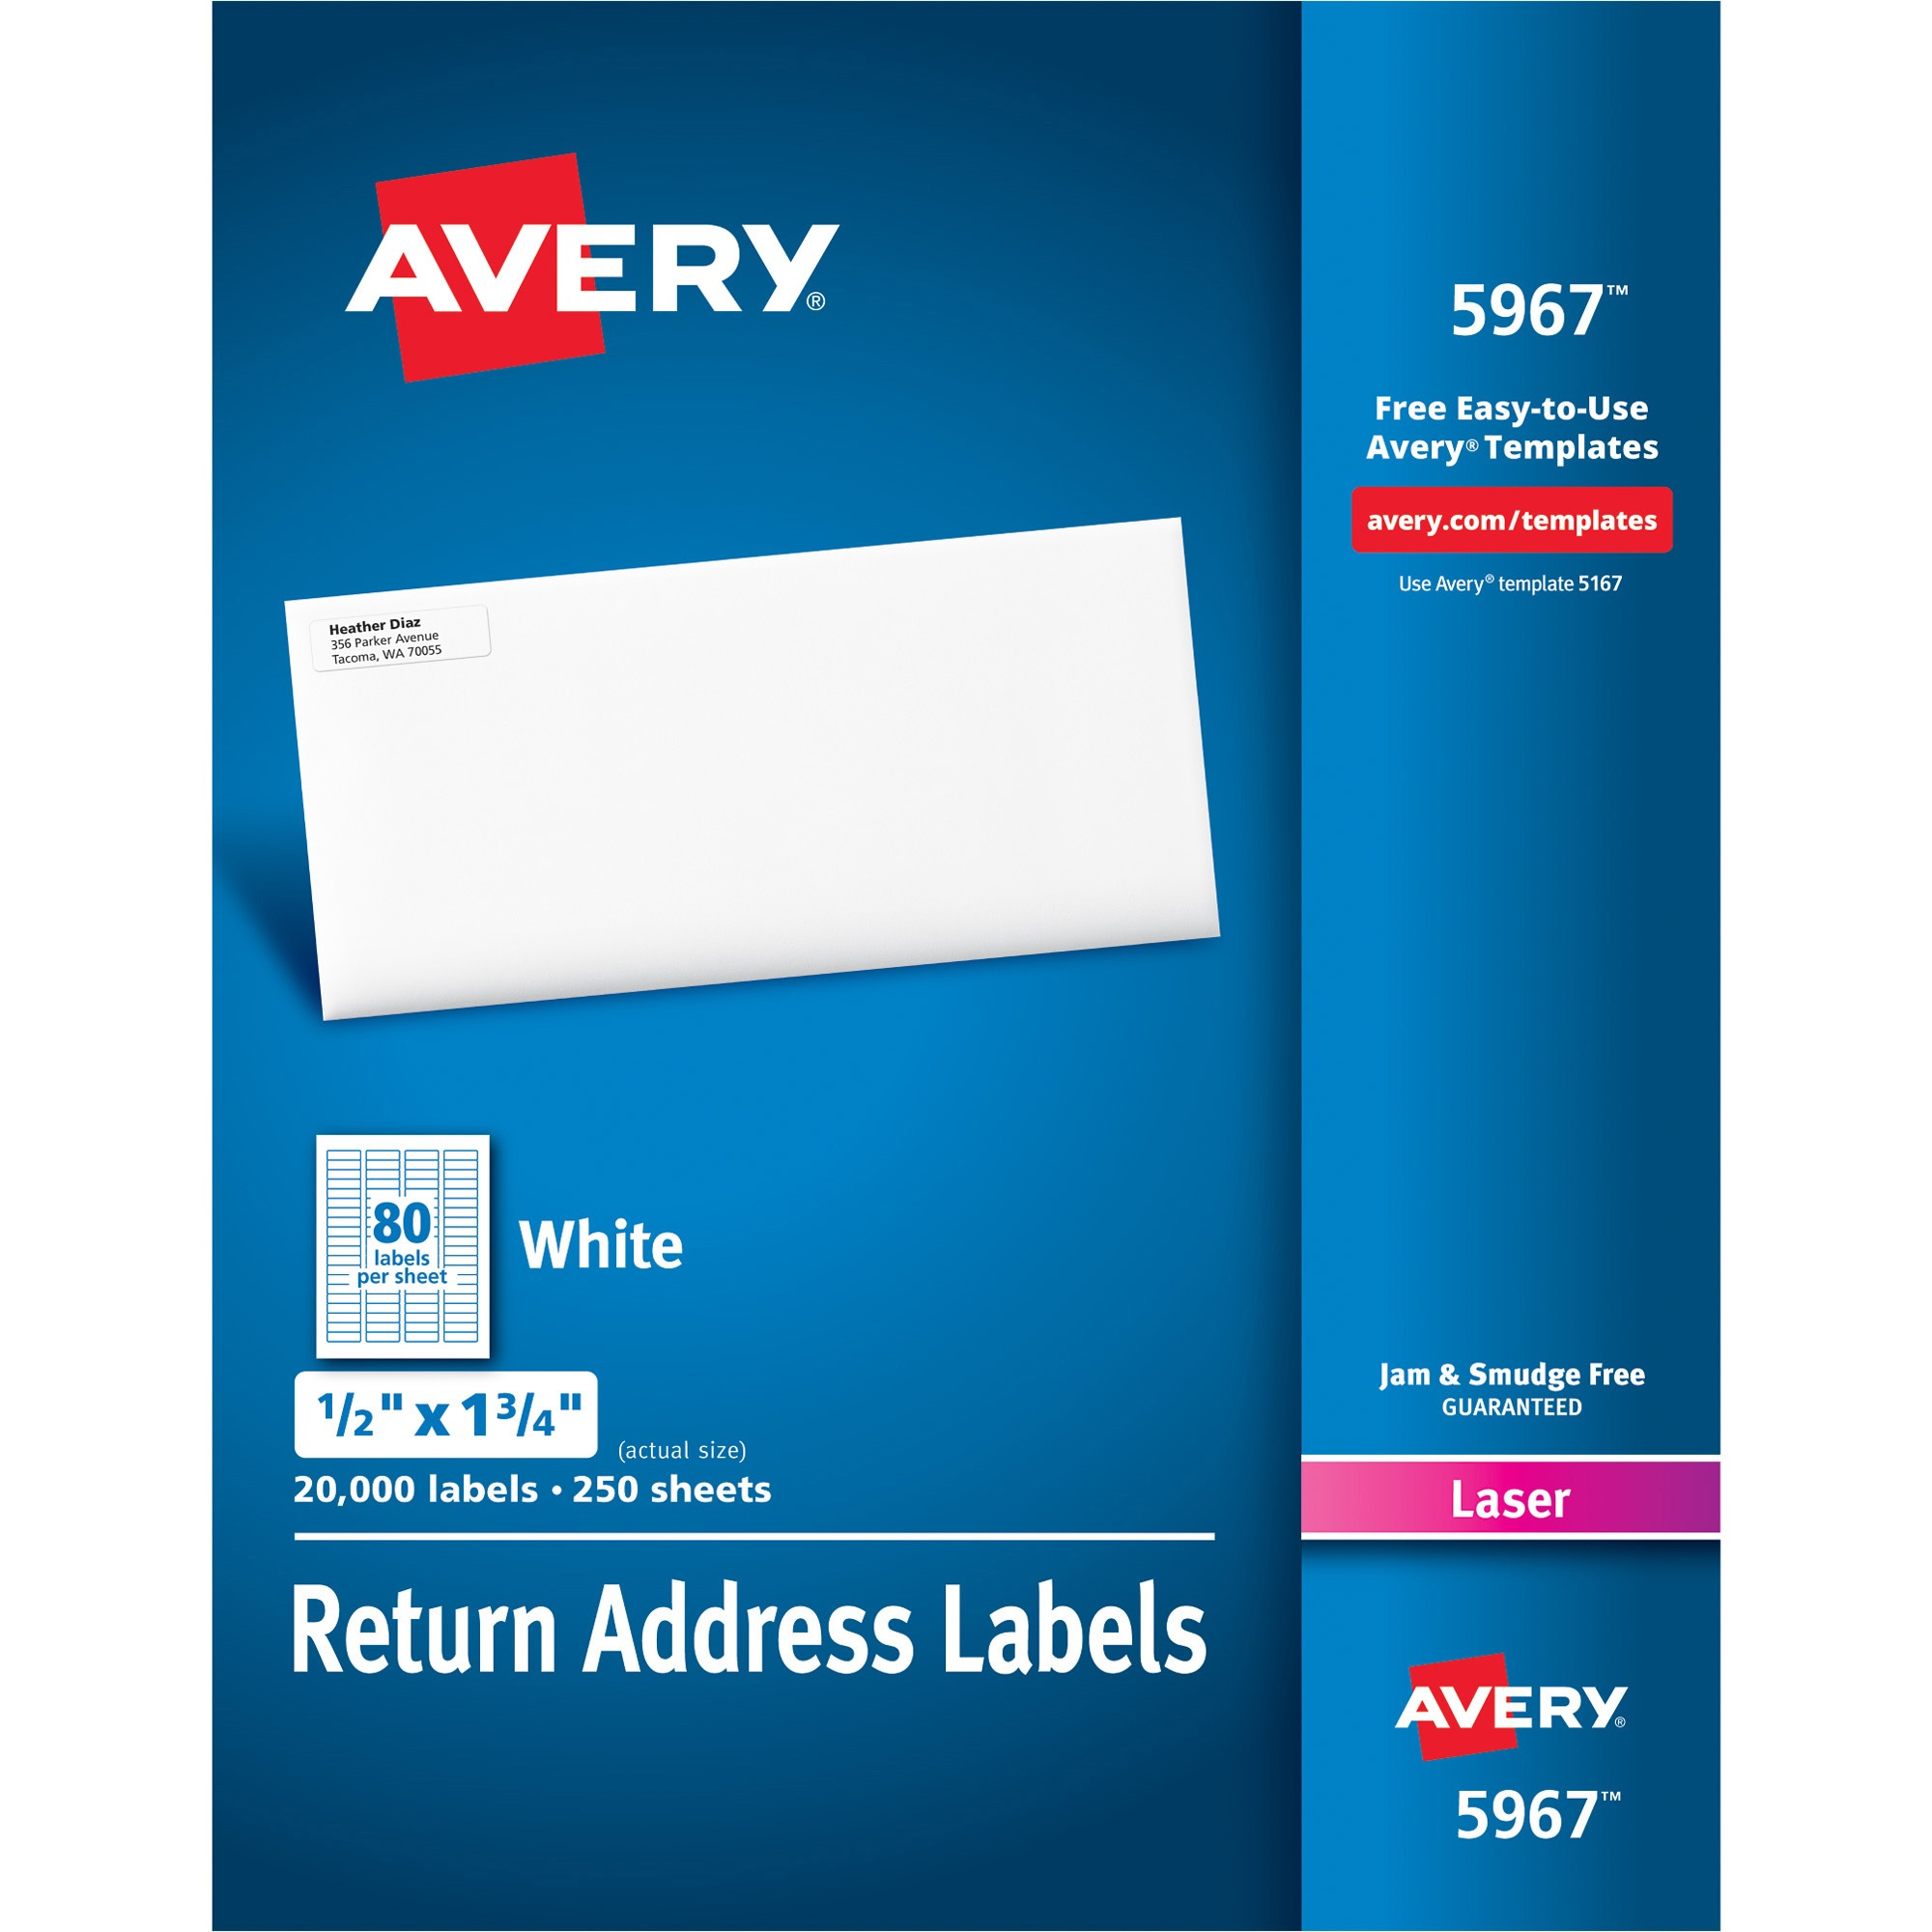 Avery Address Labels for Laser Printers, 1 2 x 1 3 4, White, 20000 Box by Avery